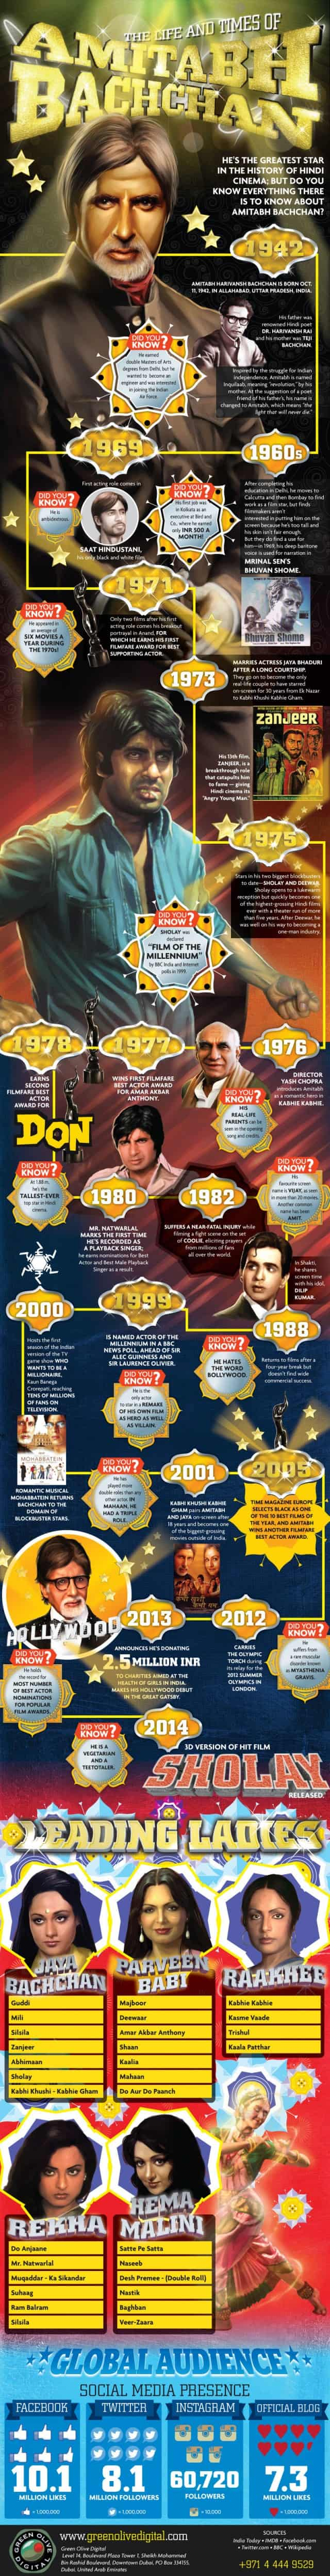 Life And Times Of Amitabh Bachchan Infographic